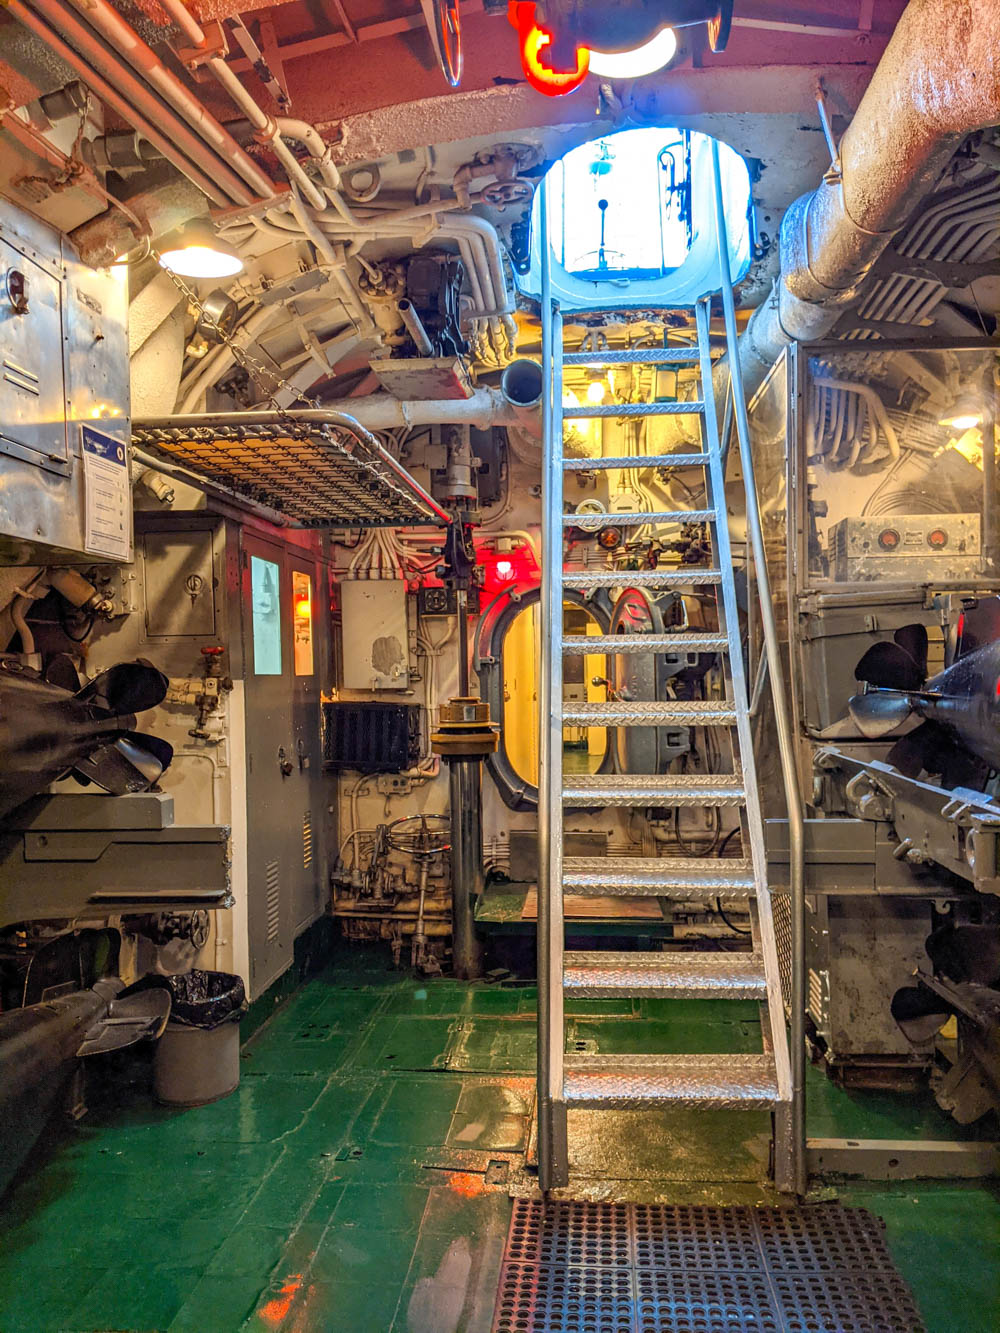 WWII sites in Massachusetts, Battleship Cove in Fall River, USS Lionfish submarine